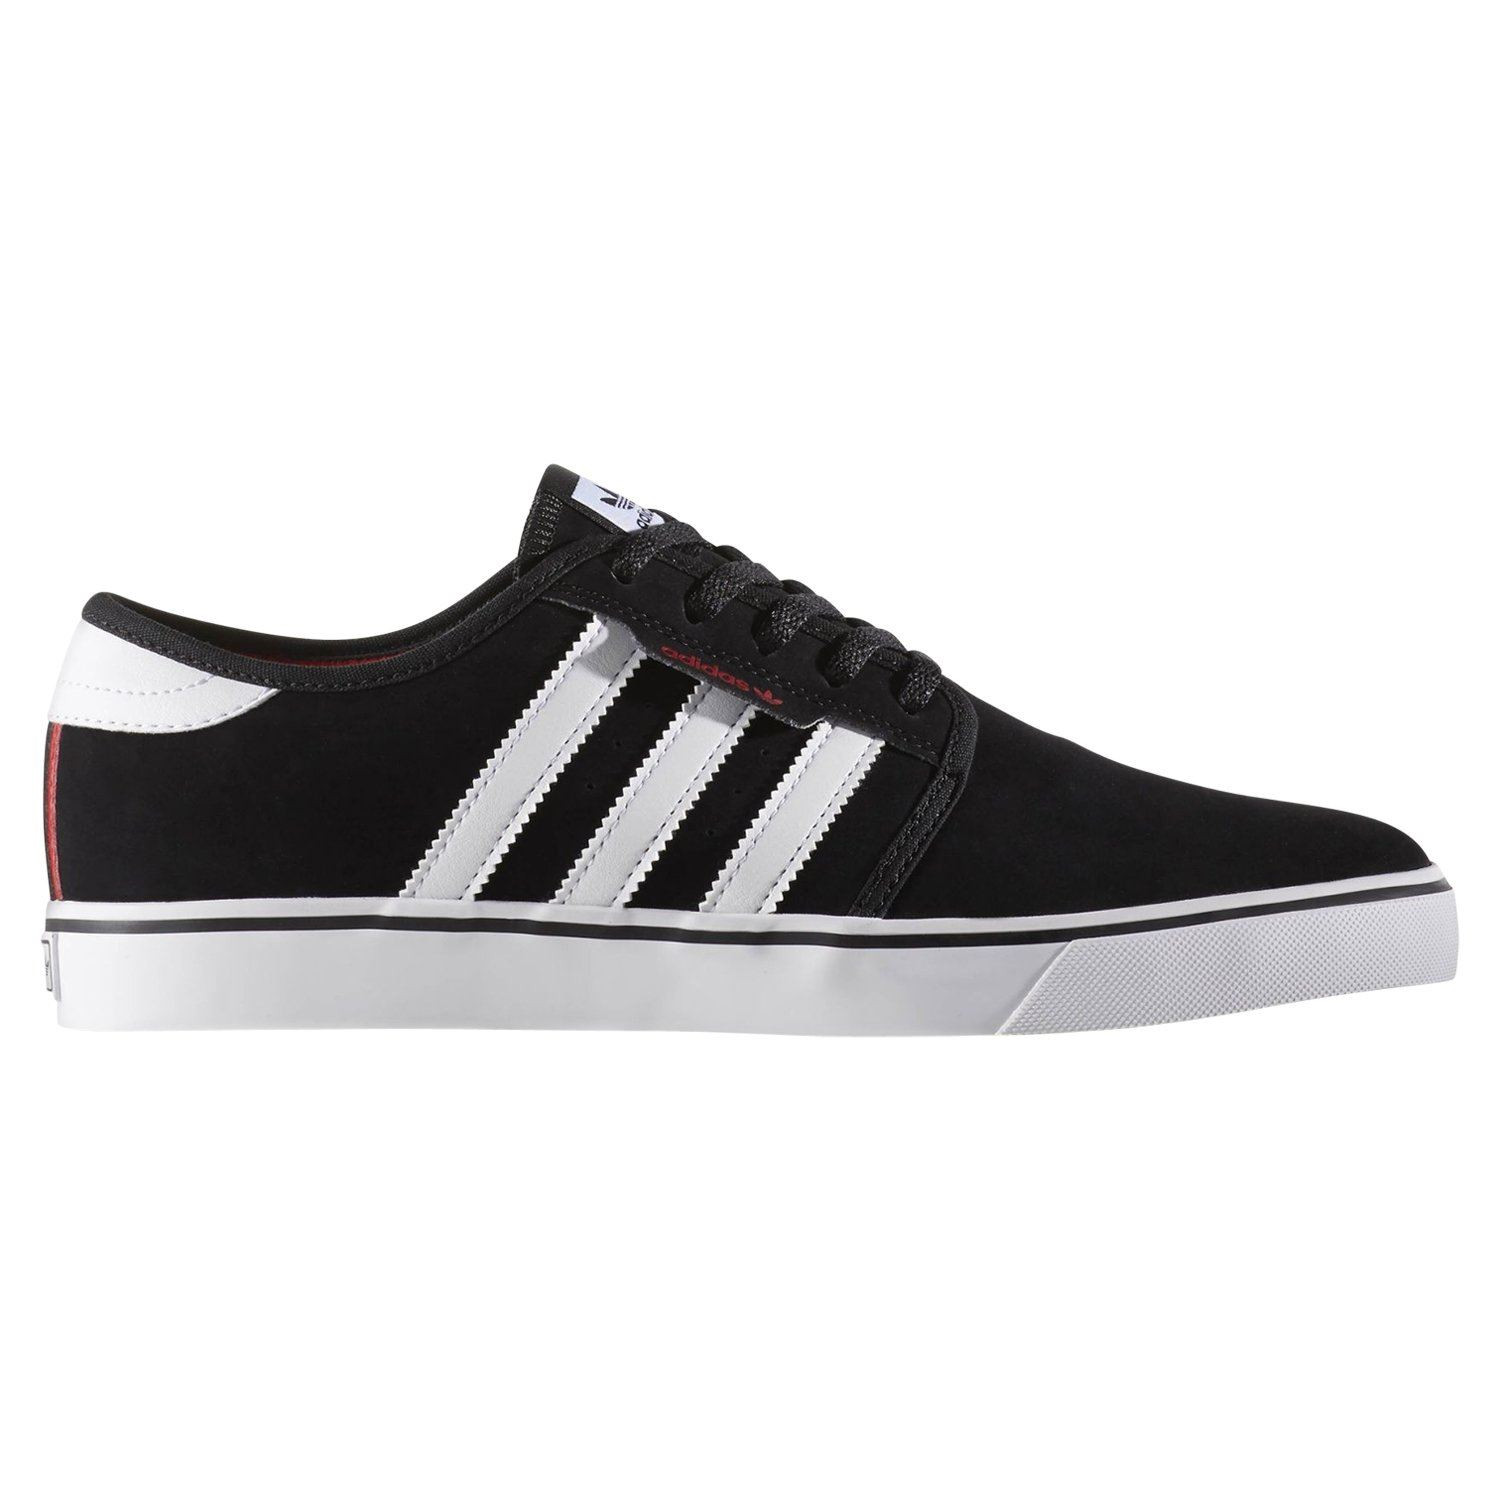 new product d11e9 911ab adidas ORIGINALS MEN S SEELEY SKATE TRAINERS BLACK SNEAKERS SHOES  SKATEBOARDING